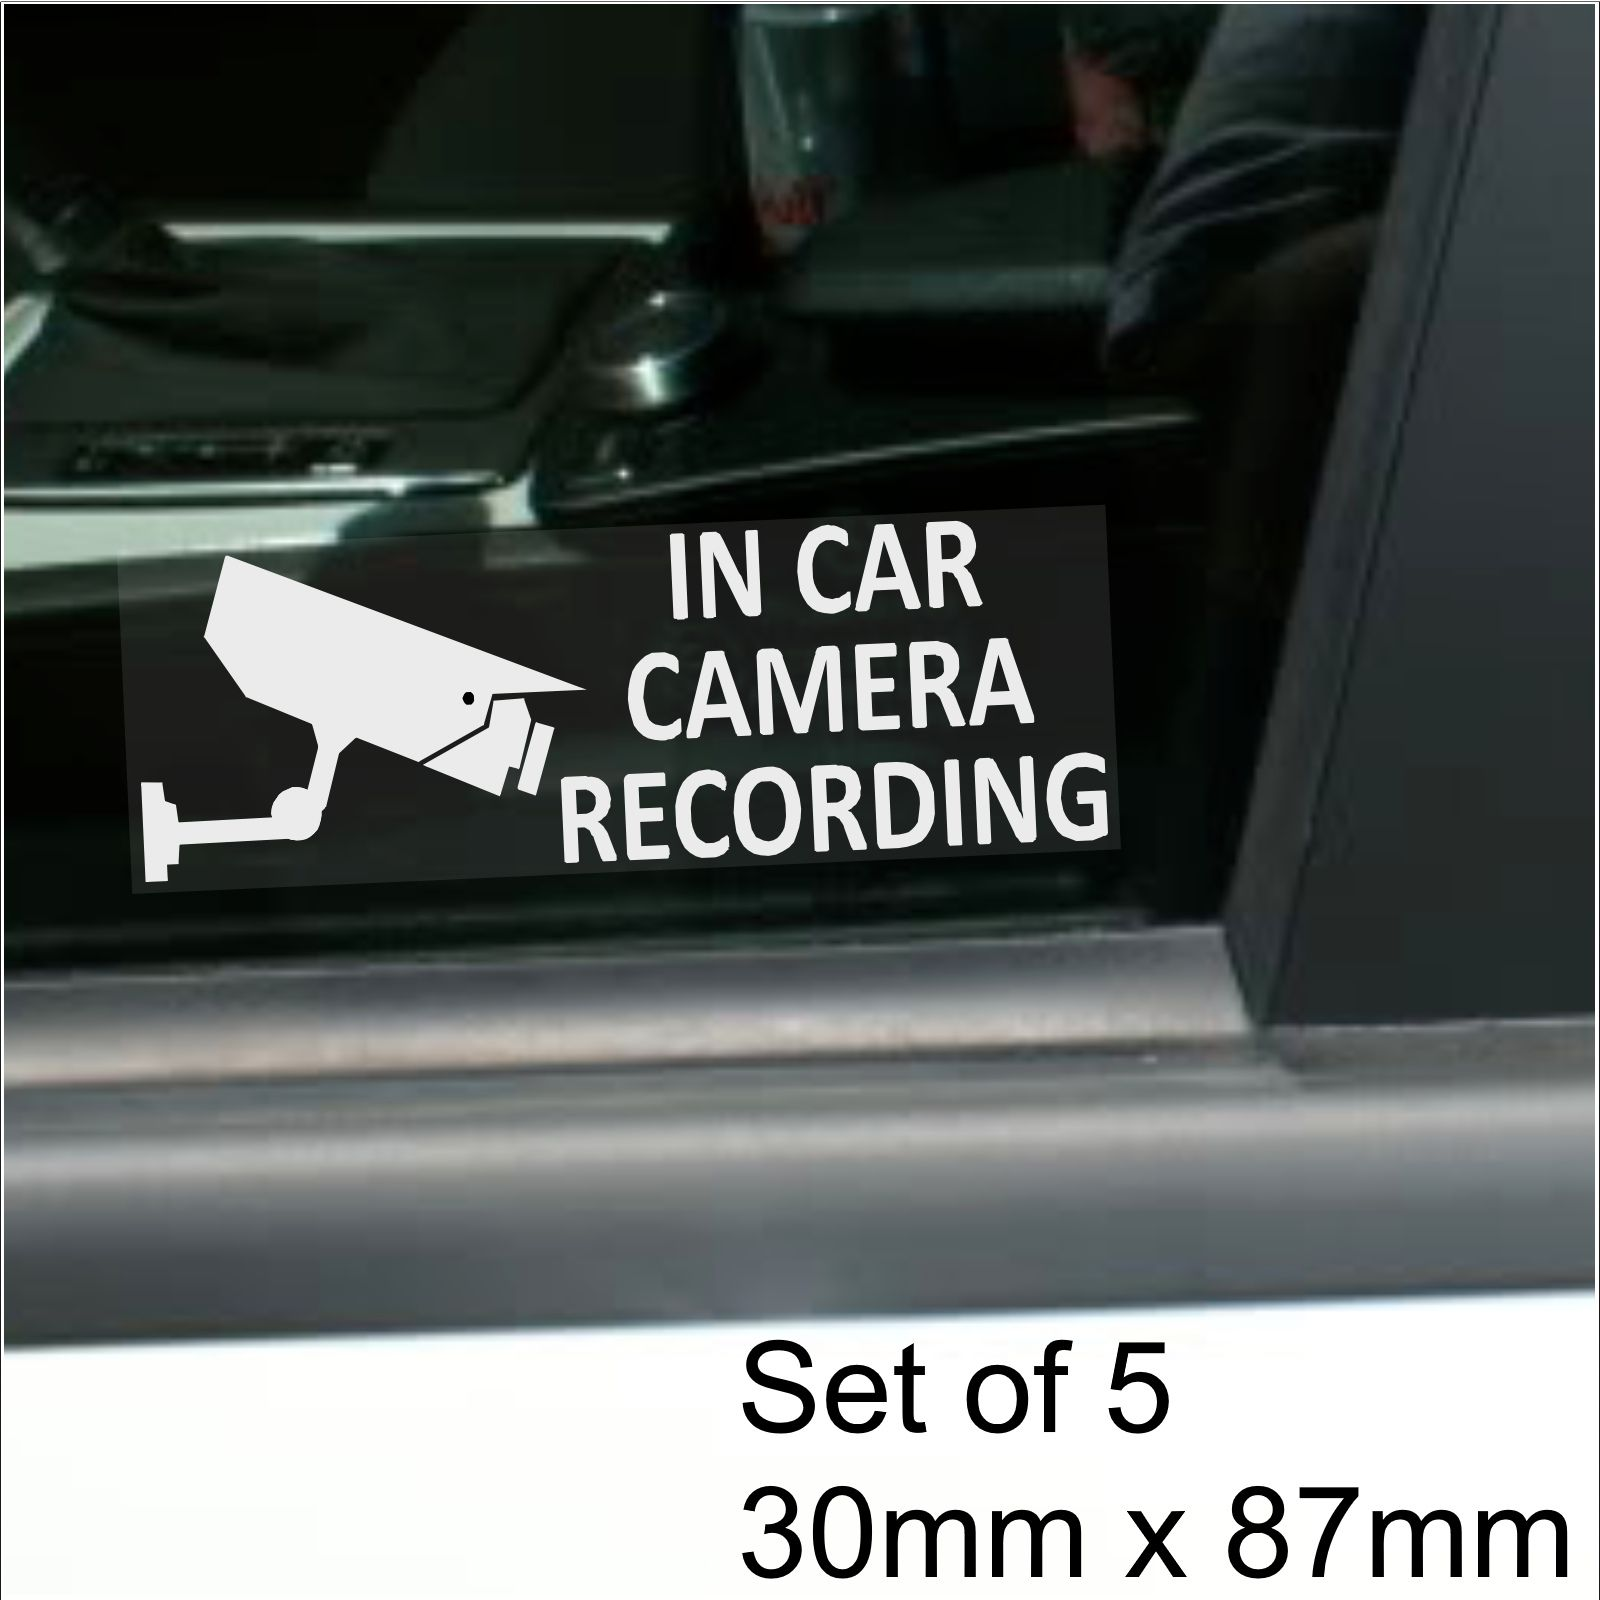 Platinum Place 4 x 60x87mm In Car Camera Recording Window Stickers-White on Clear-CCTV Sign-Van,Lorry,Truck,Taxi,Bus,Mini Cab,Minicab.White onto Clear Adhesive Vinyl Signs-Go Pro,Dashcam